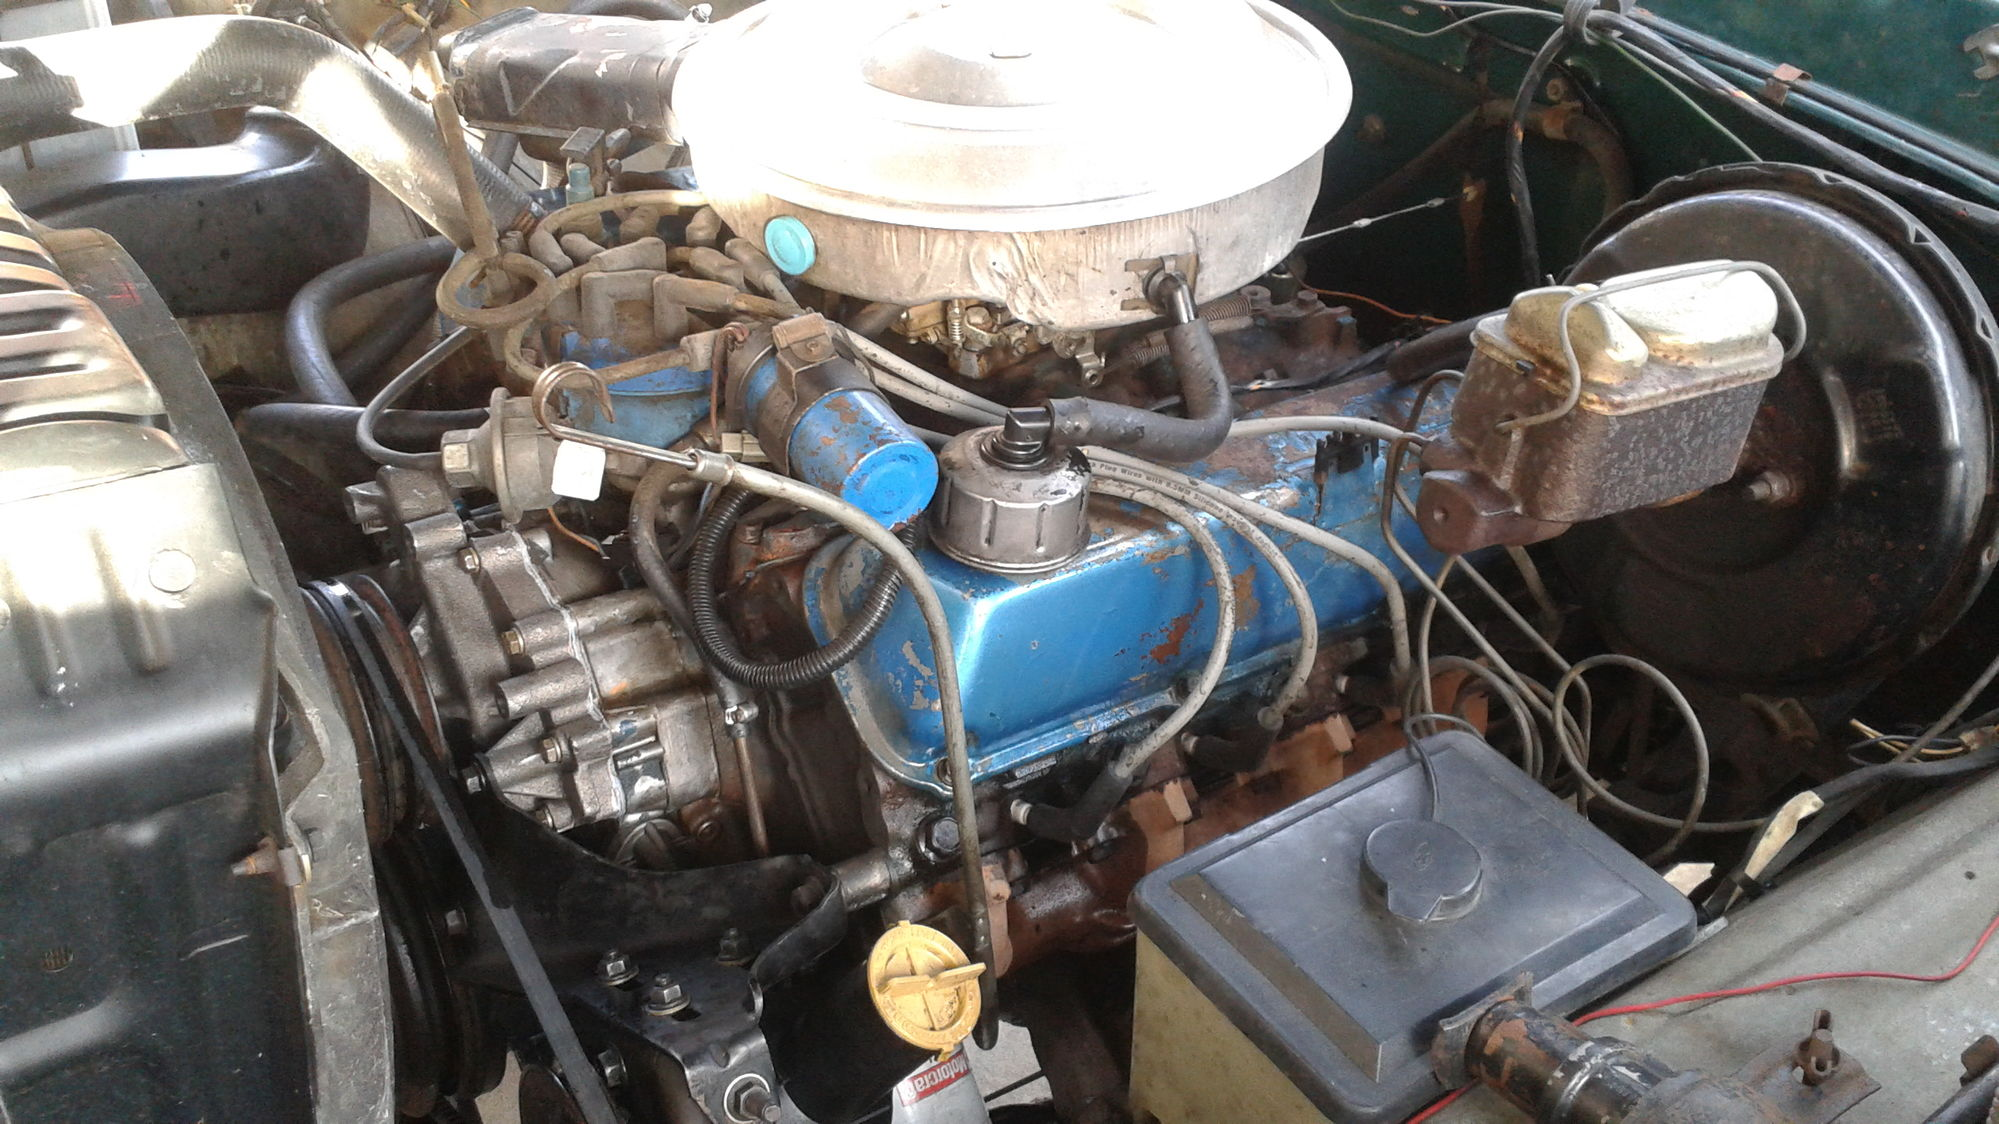 I did the wp ps and alternator last week mostly to learn